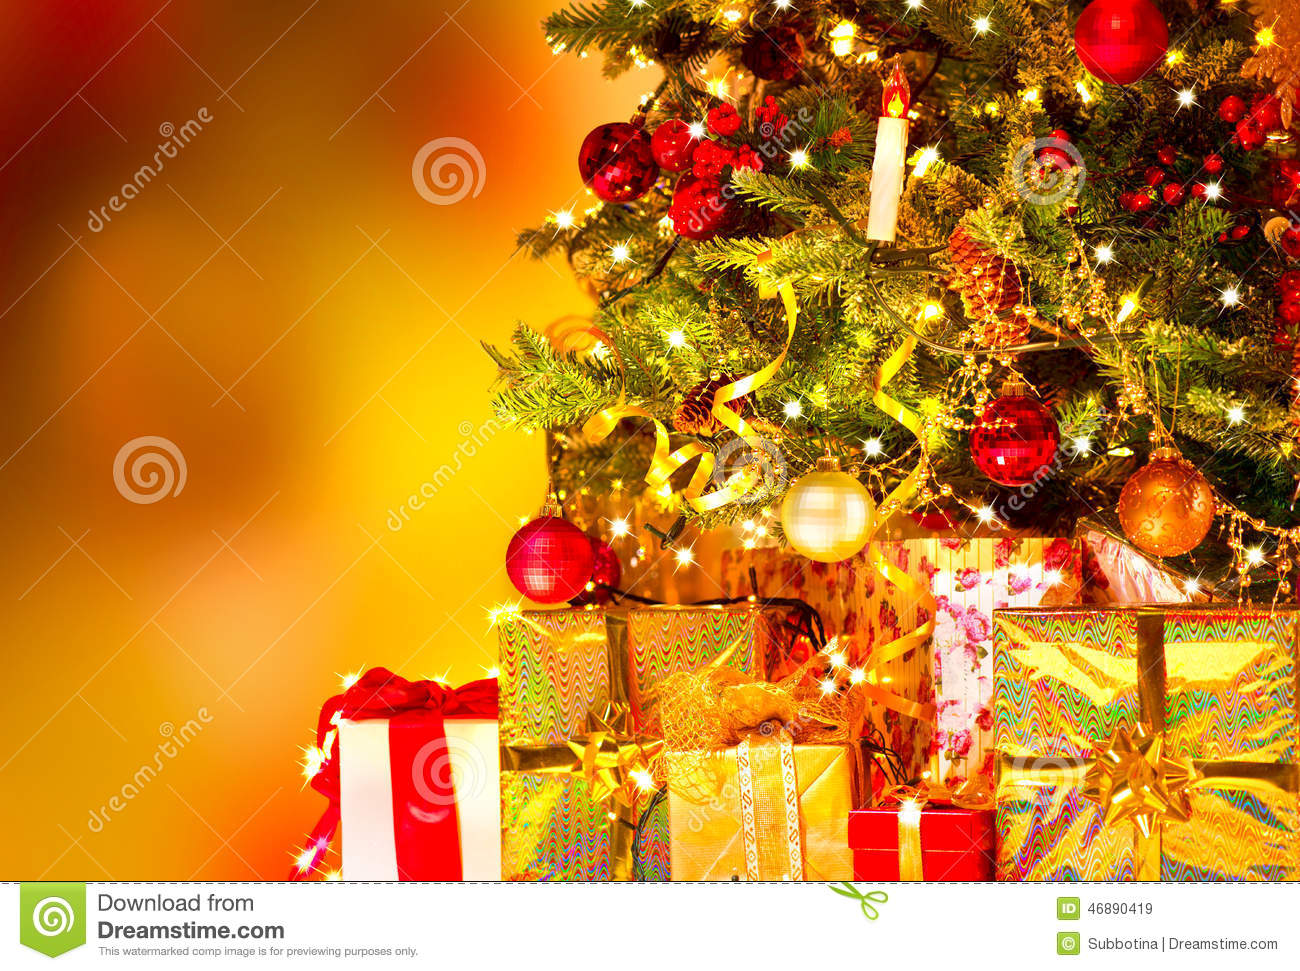 Gifts Under The Christmas Tree Stock Image - Image of home, boxes ...